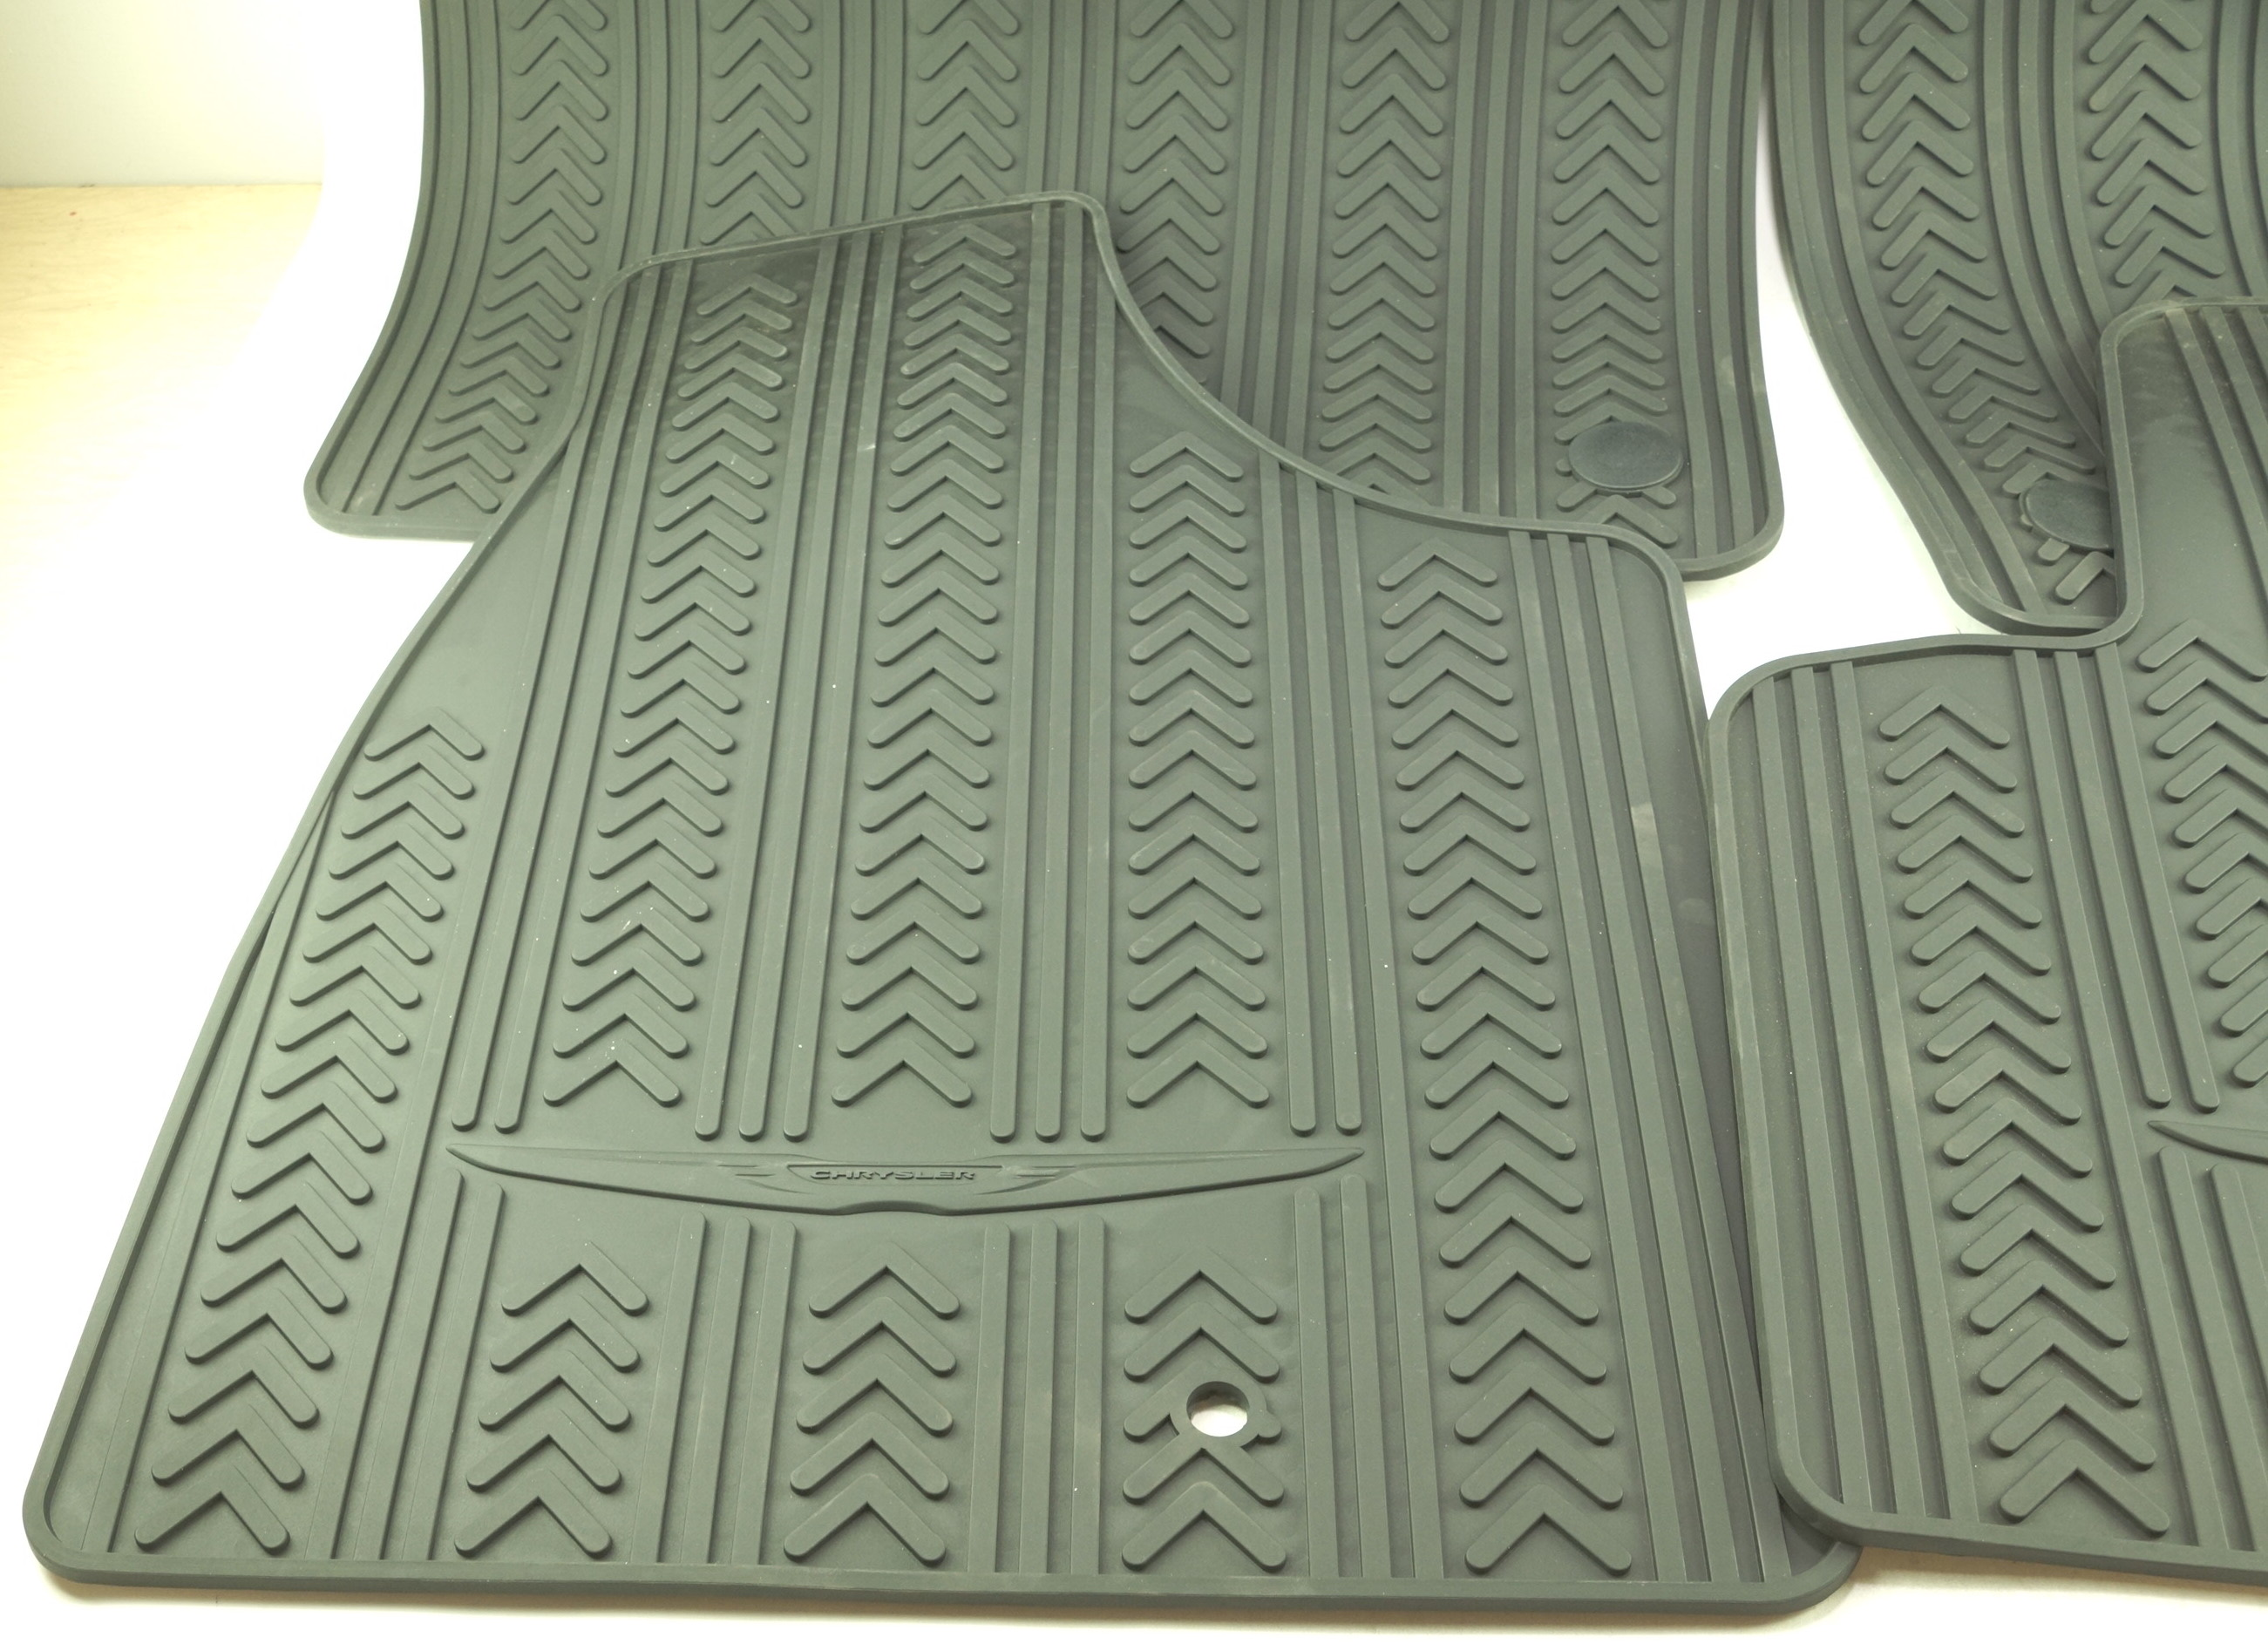 New OEM 82213479 Mopar Town & Country Front & 2nd Row Black Rubber Floor Mats - image 2